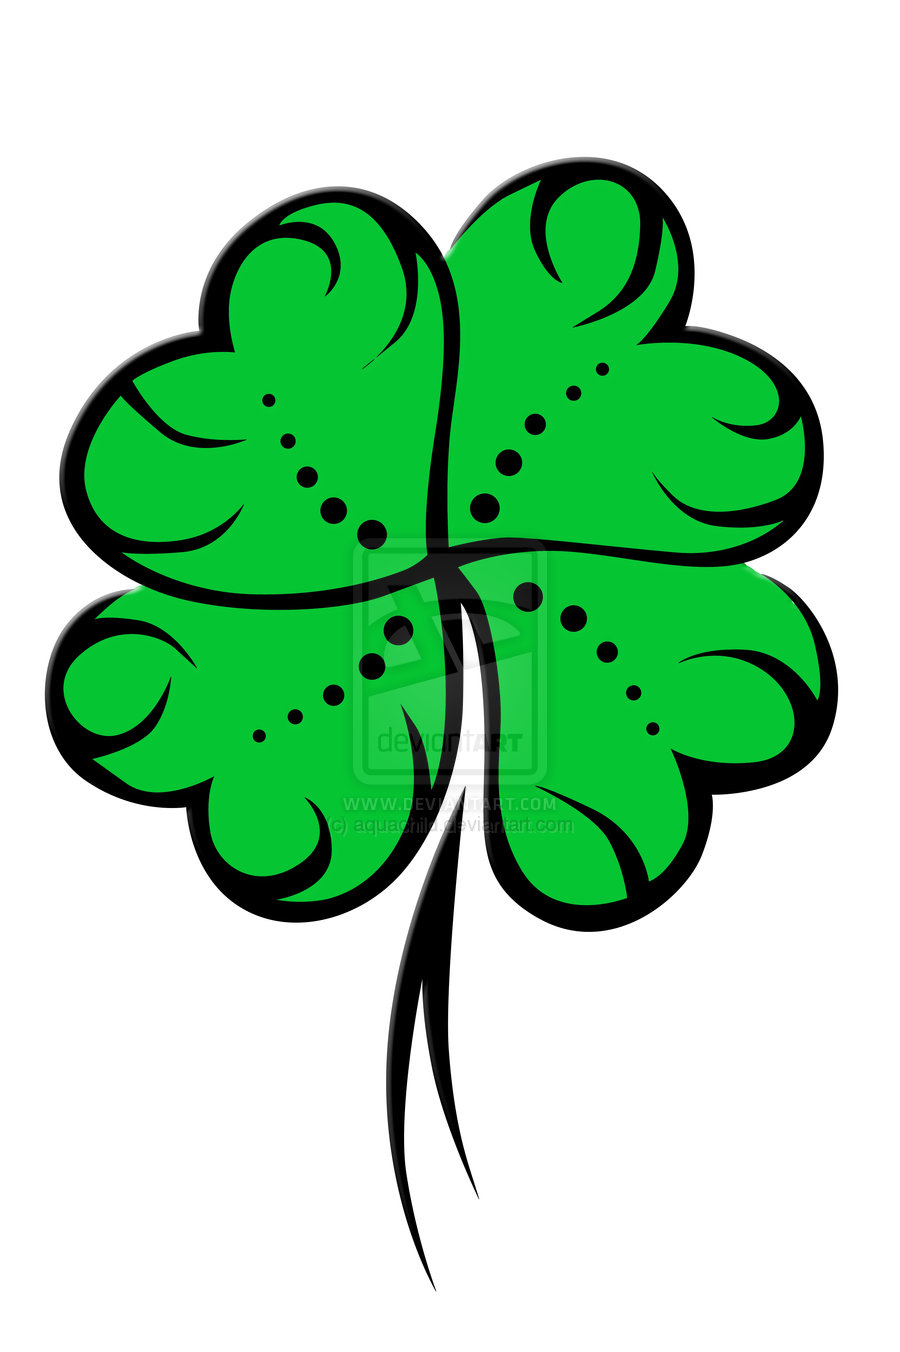 4 Leaf Clover 3-2 by aquachild on Clipart library